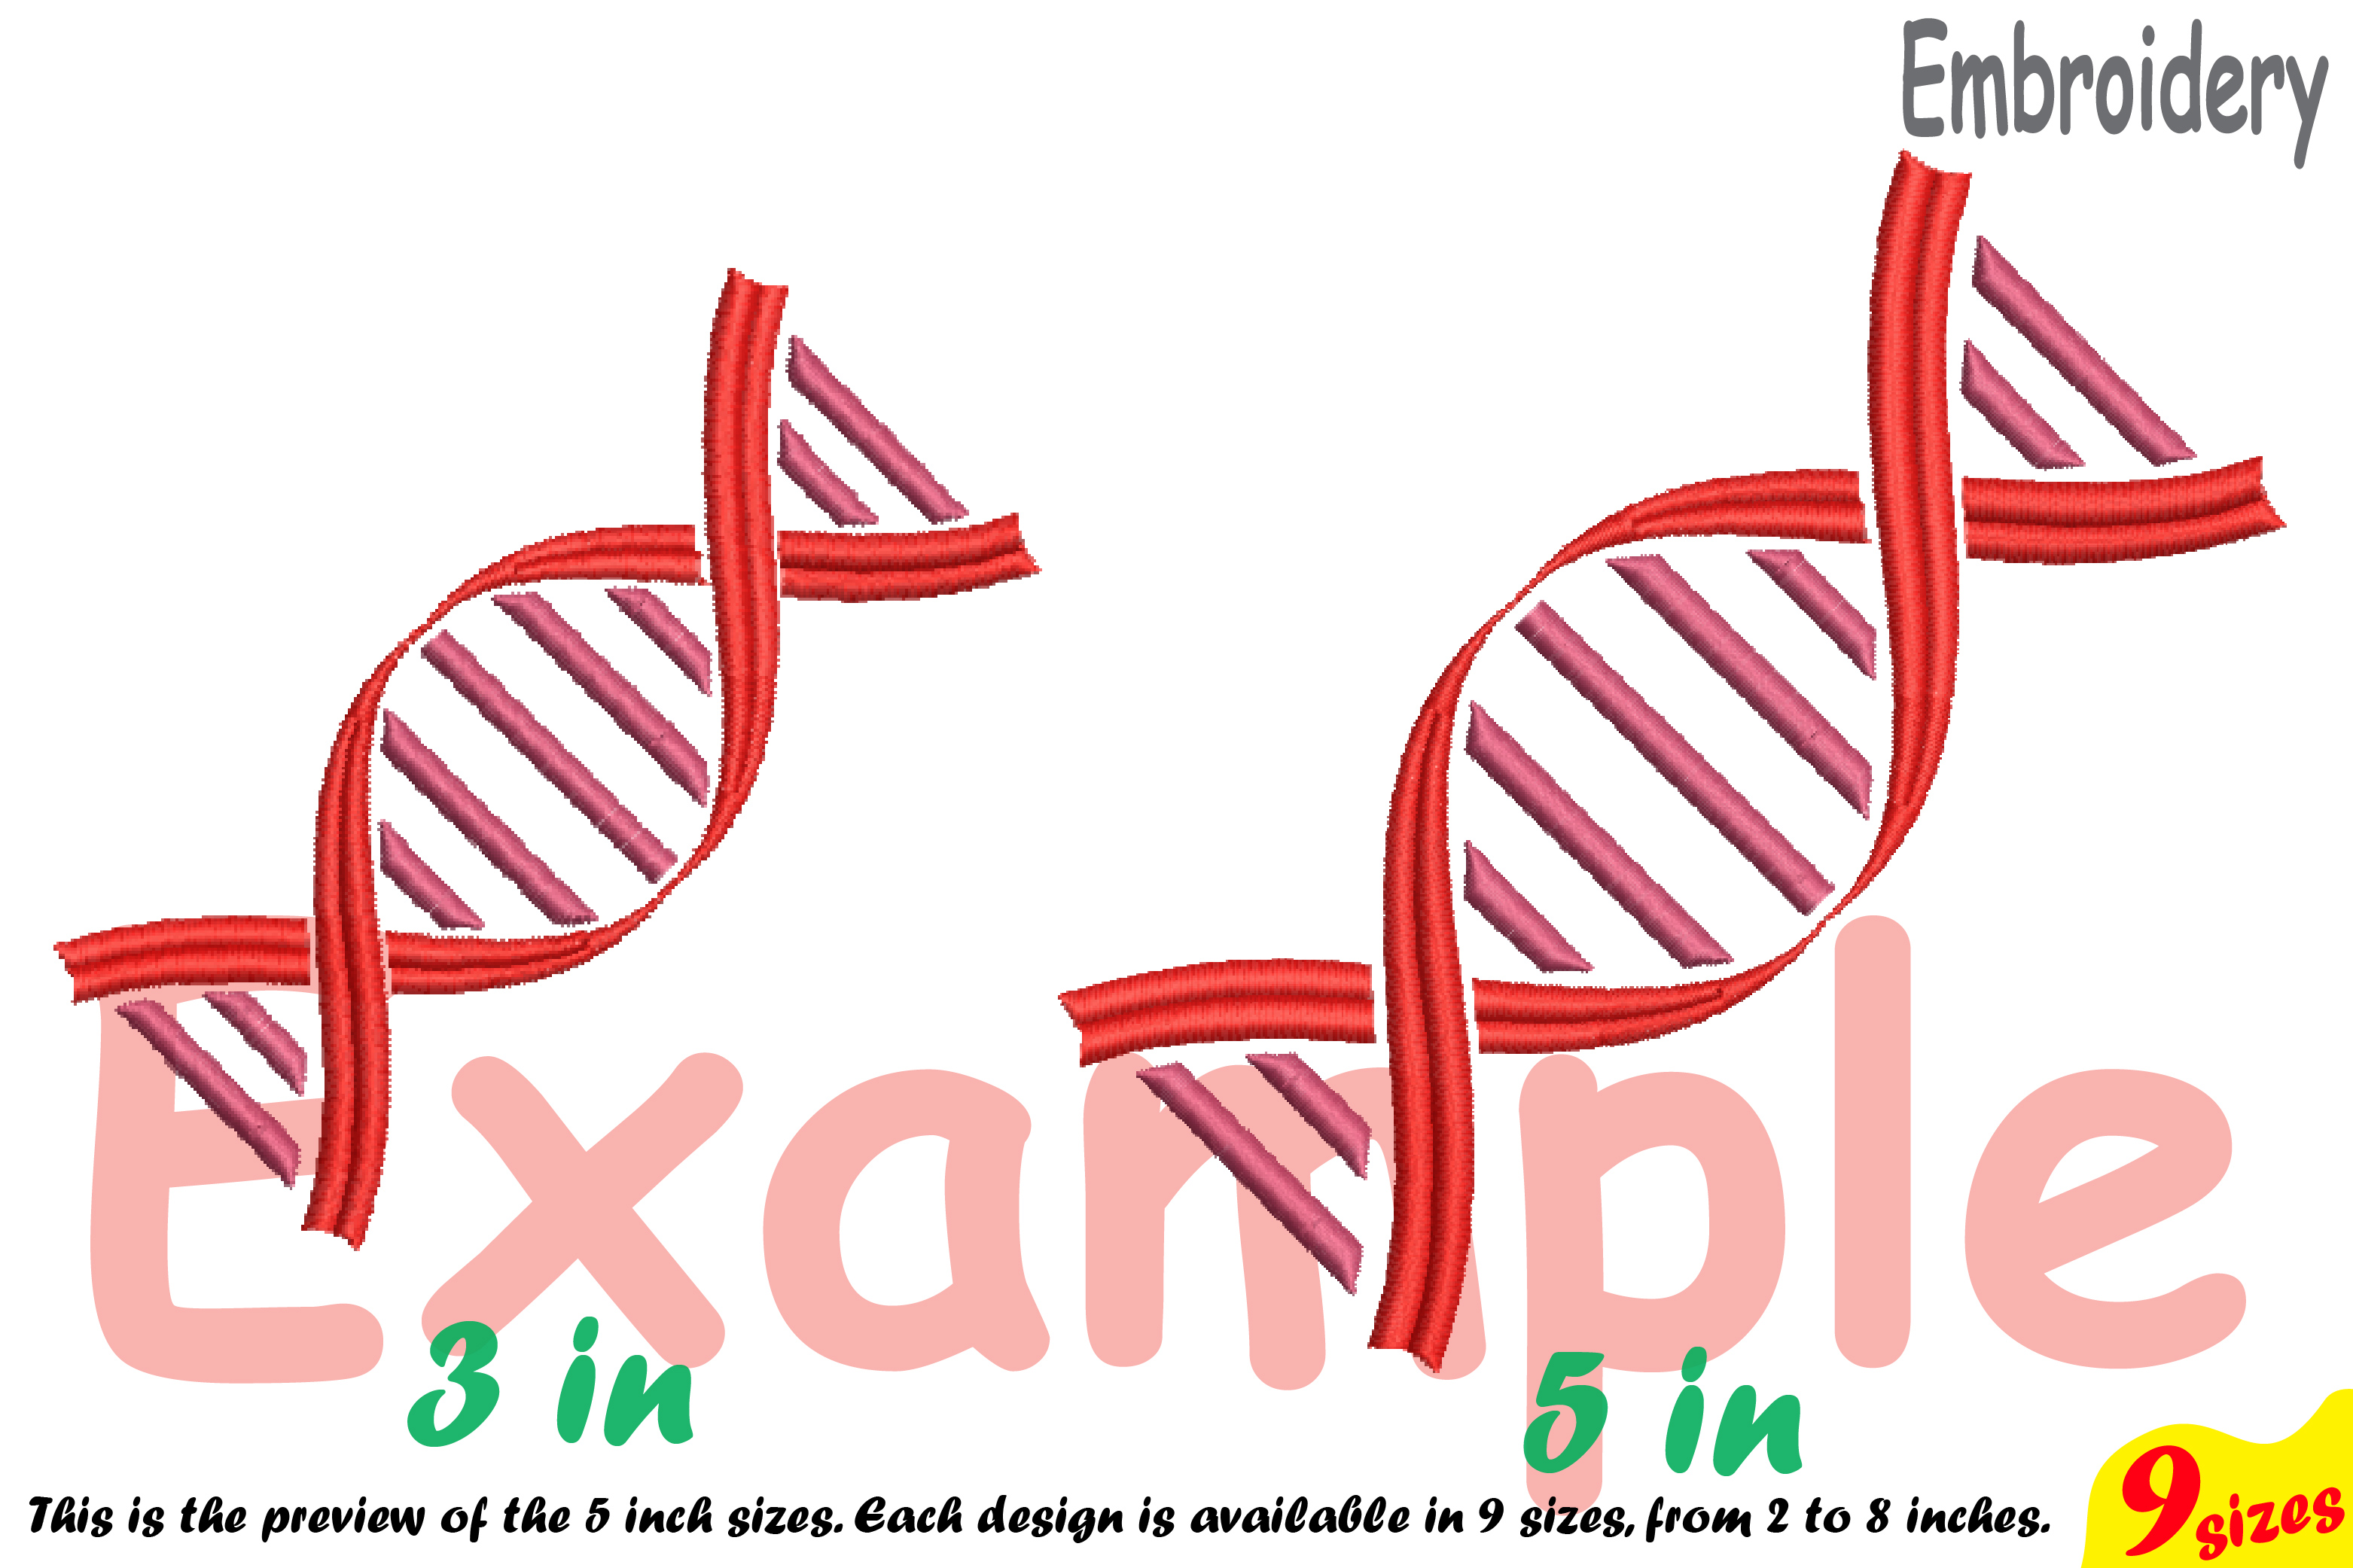 DNA Structure - Science - Designs for Embroidery Machine Instant Download Commercial Use digital file 4x4 5x7 hoop icon symbol sign 194b example image 4